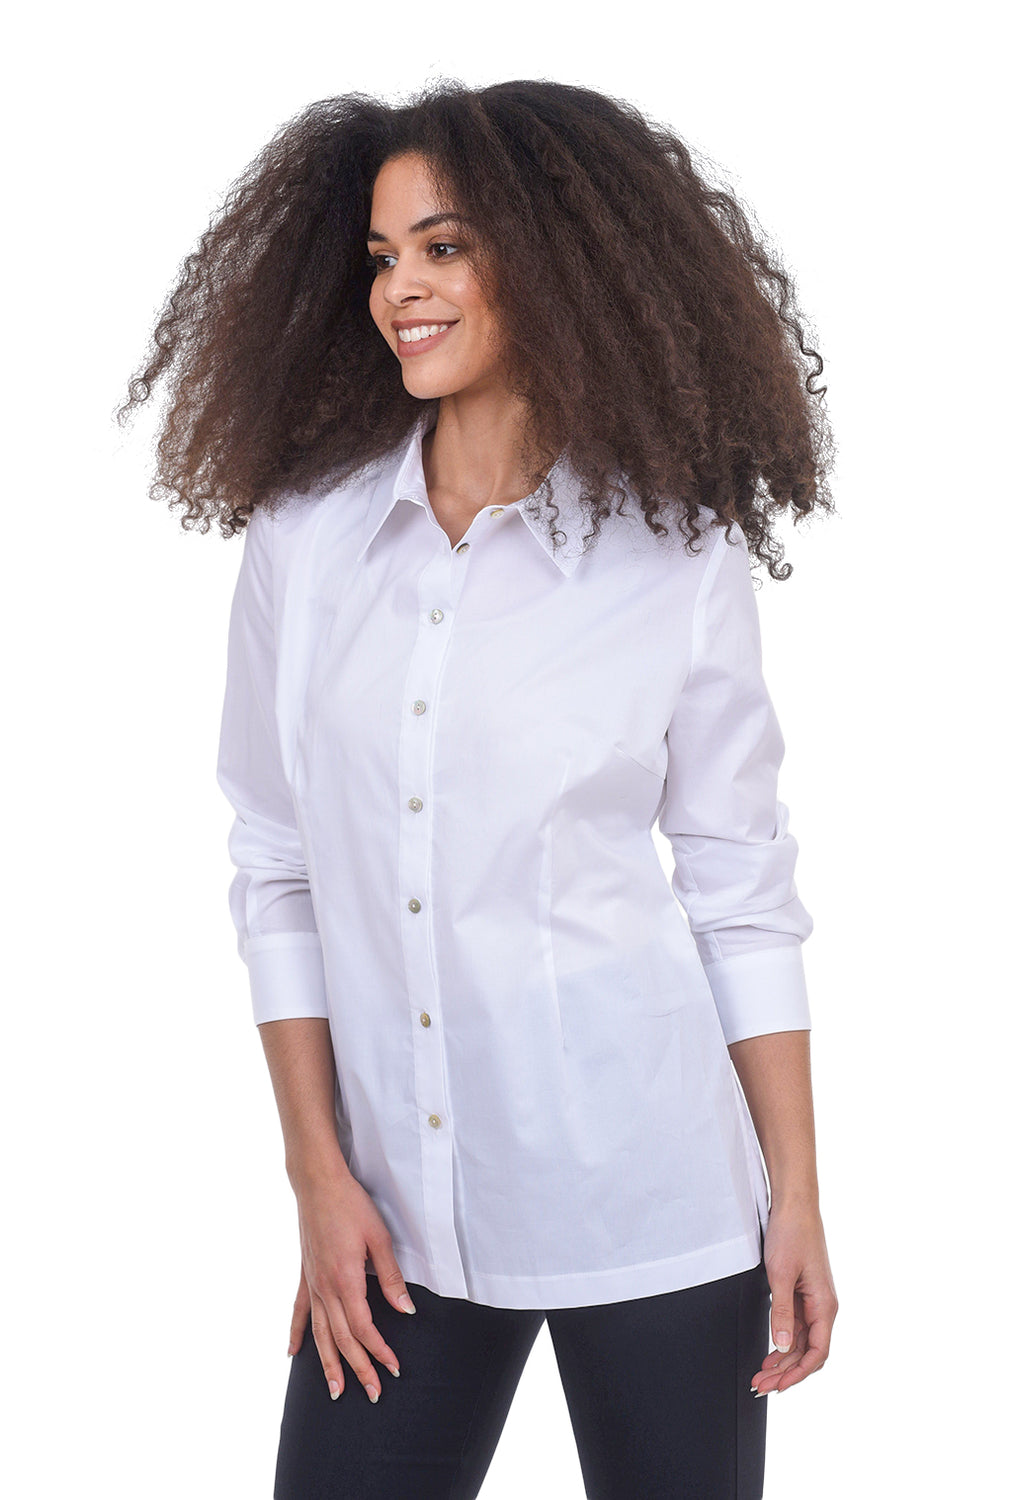 Estelle & Finn Back Tie Woven Shirt, White